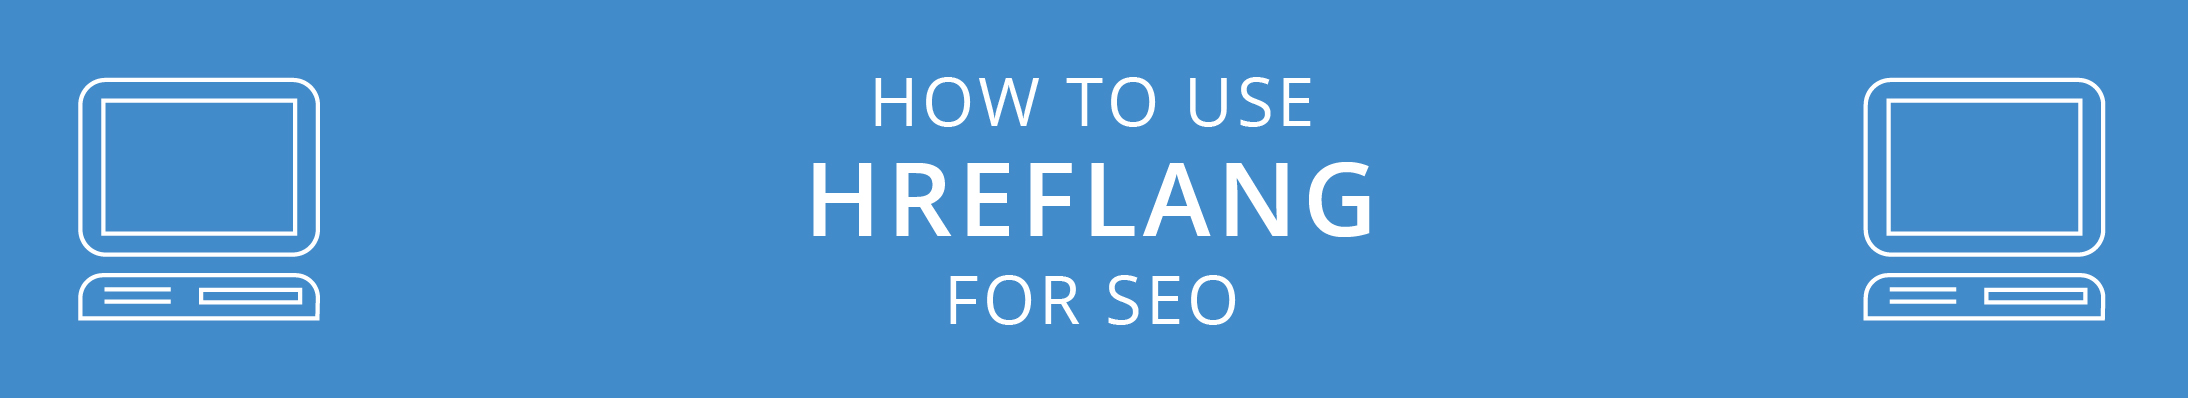 How to Use Hreflang for SEO